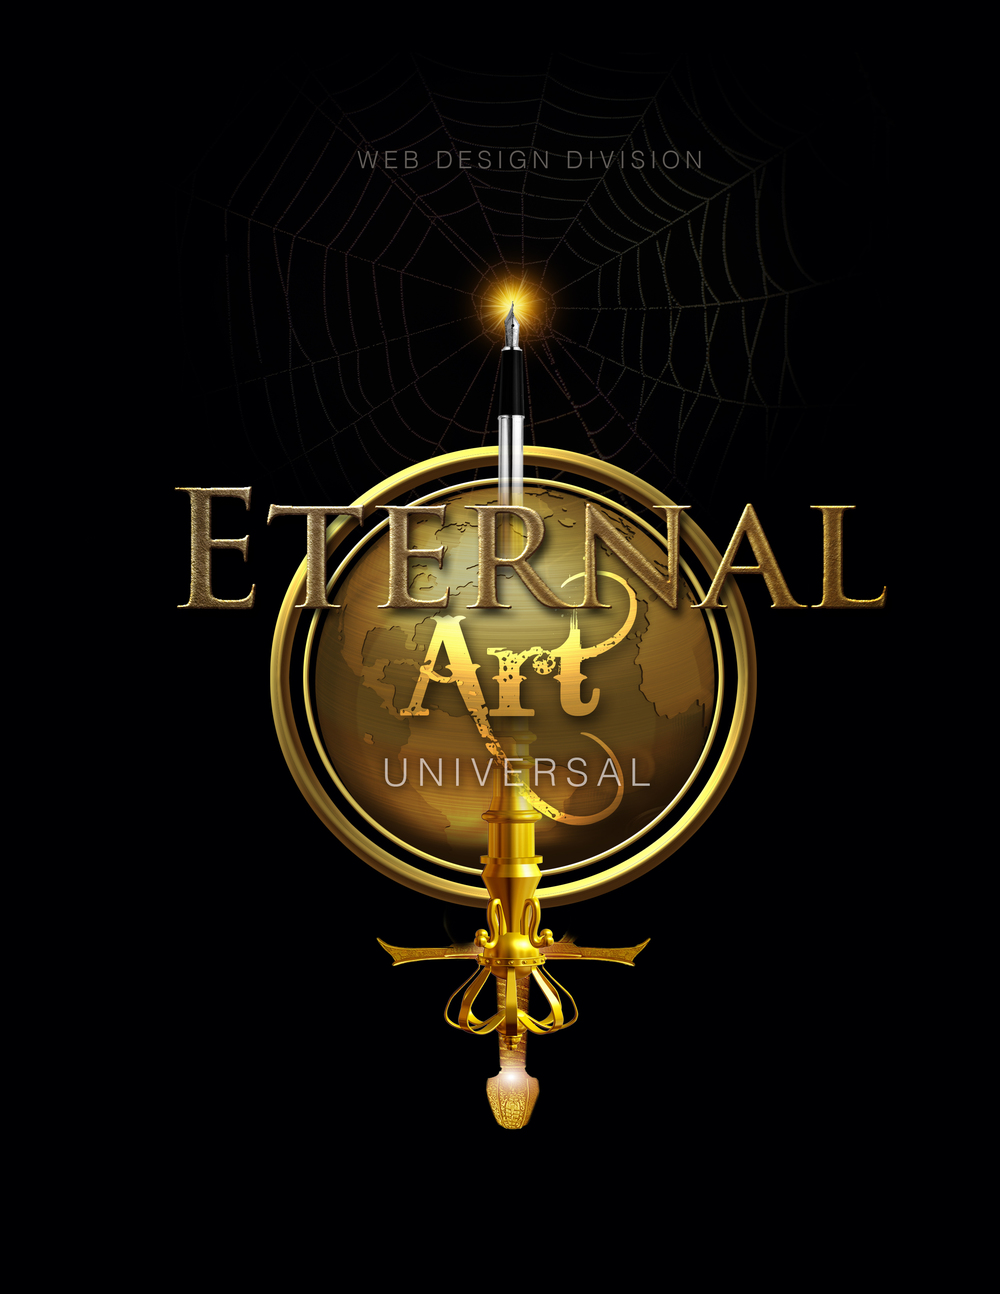 Eternal Art Universal